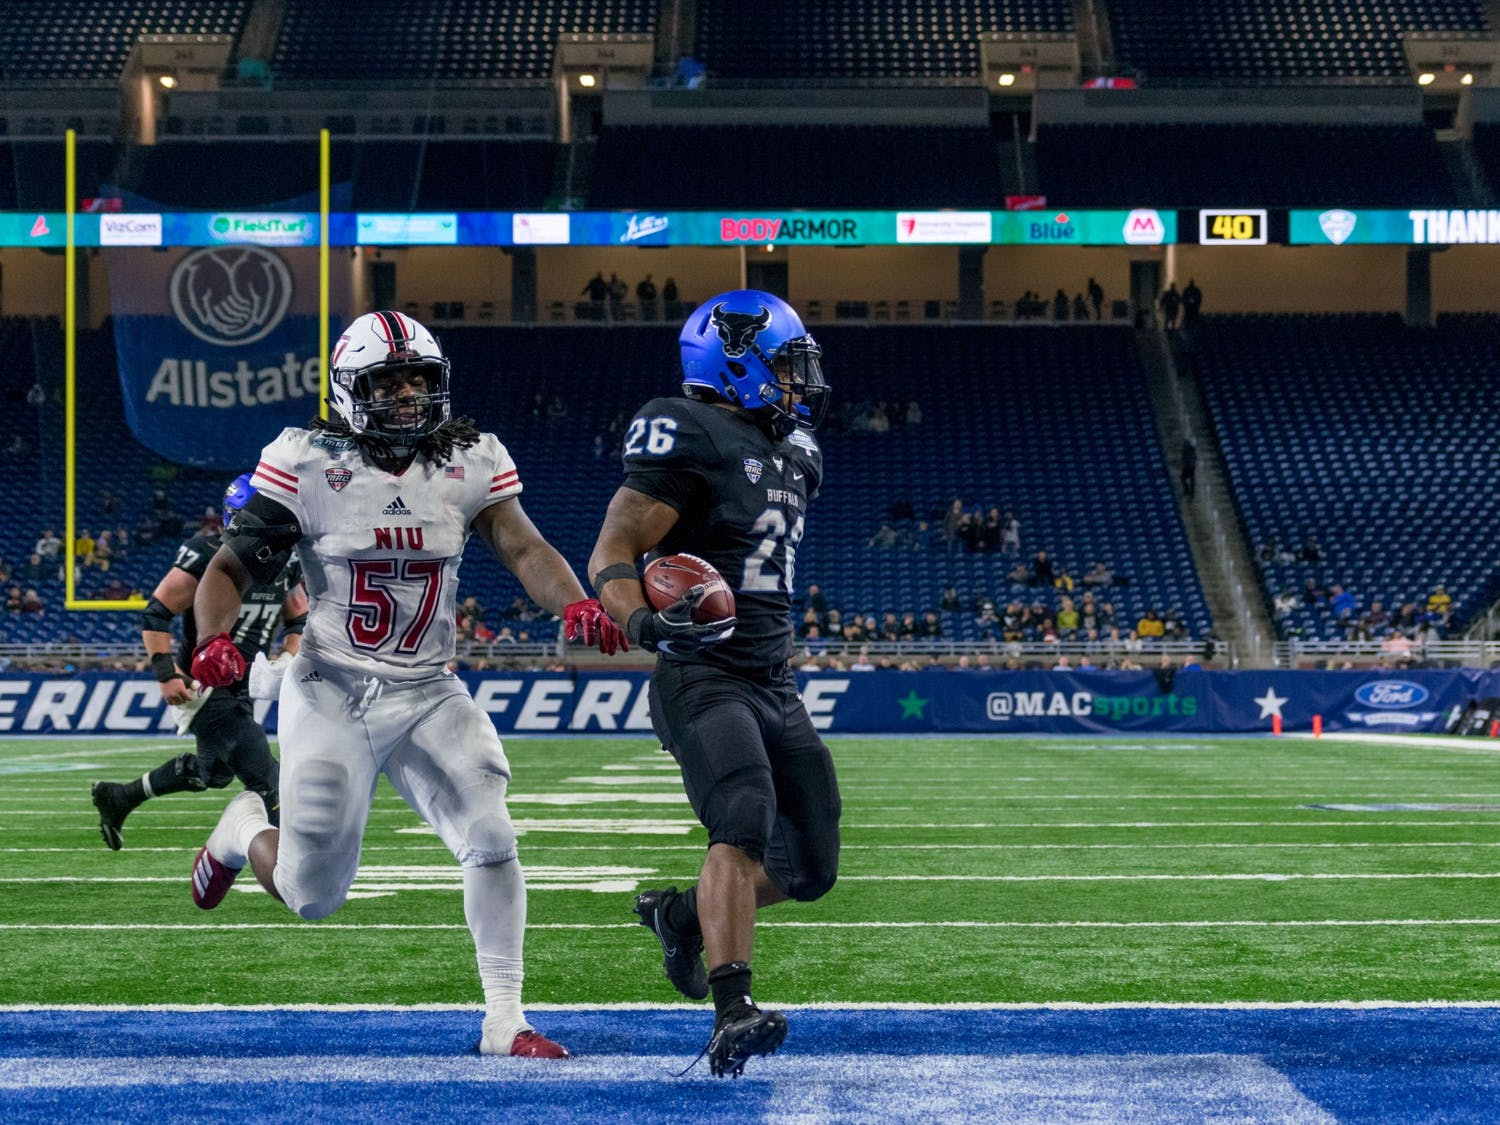 Northern Illinois defeated UB 30-29 in the 2018 Marathon MAC Championship Game at Ford Field in Detroit. More than two years later, the conference has changed its transfer policy.